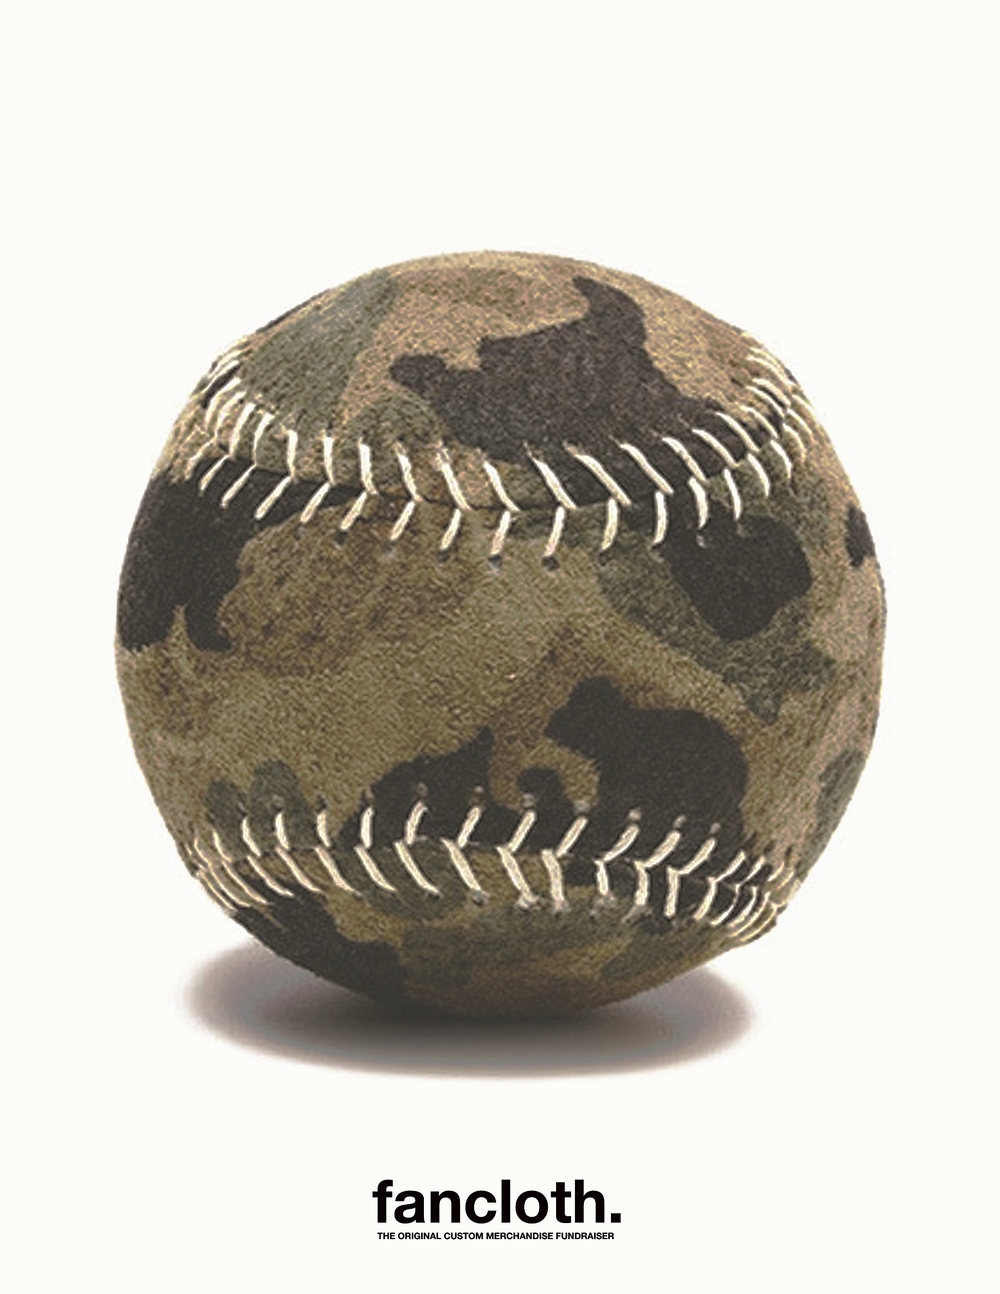 As the holiday season approaches, Bergino delivers with a range of their handmade decorative baseballs. They are featured in a vast array of patterns, such as maps, phrases, and the standout camouflage, which is presented in a beautiful suede leather. For all their craftsmanship, the baseballs are priced at a reasonable $20 USD, and appeal on both a nostalgic and purely aesthetic level. For those looking to give these as a gift this holiday season or add them to their own wishlists, the Bergino handmade baseballs are available now via the brand's BERGINO